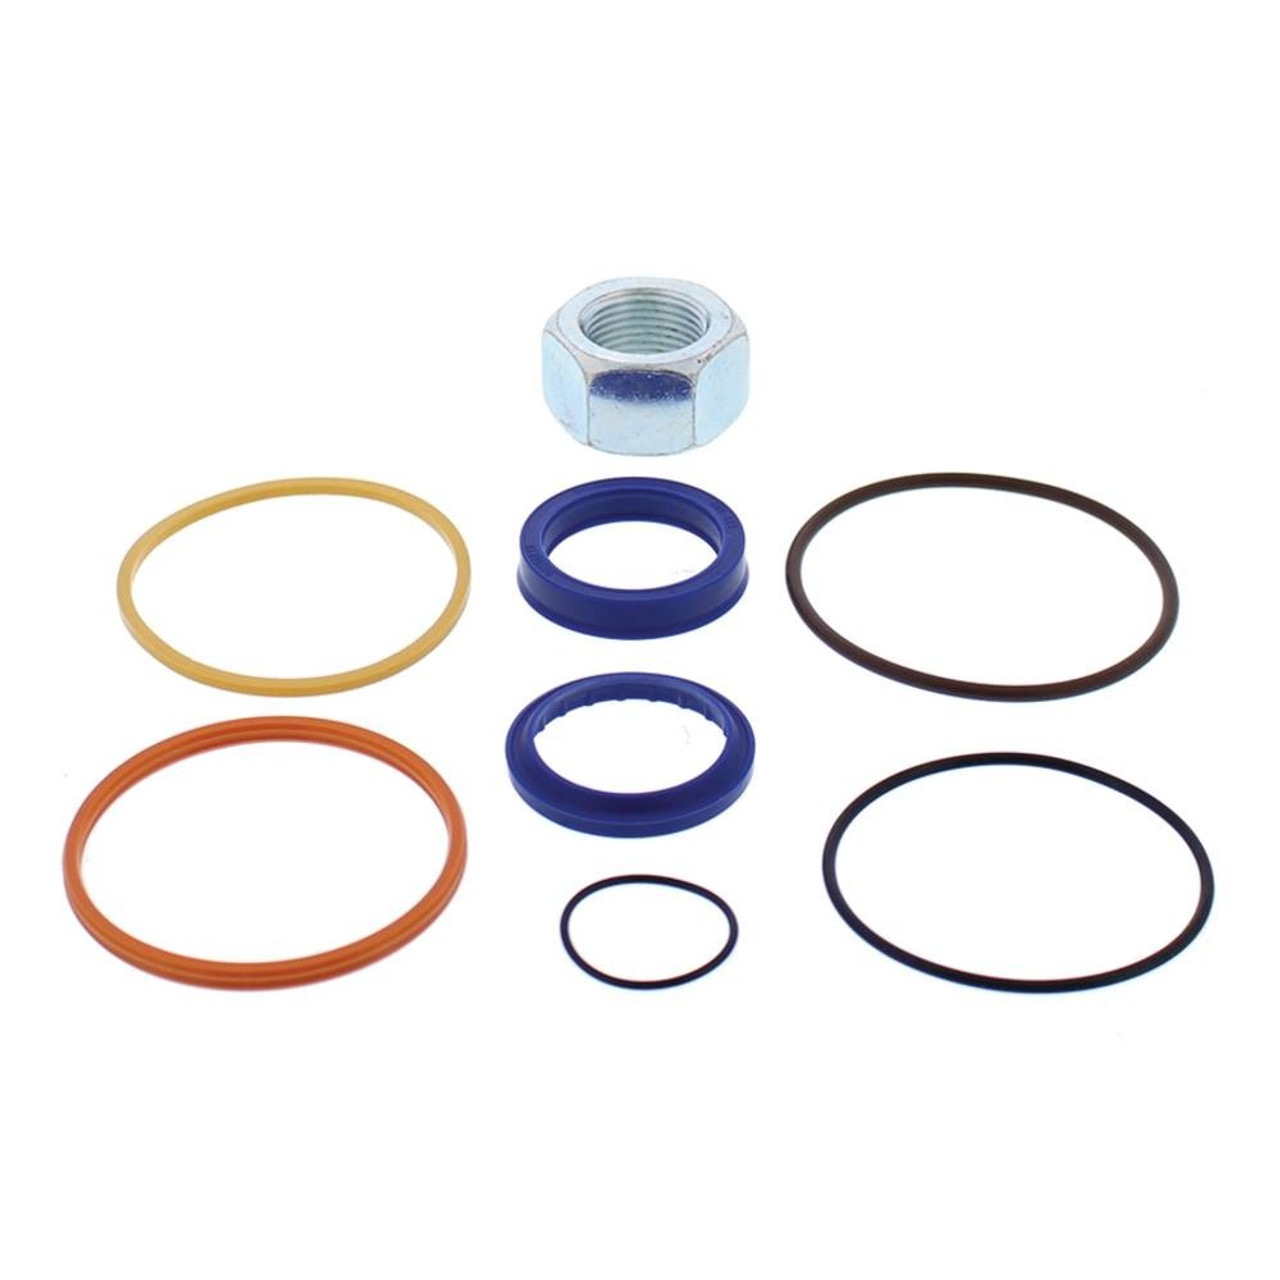 Complete Tractor T250 New Hydraulic Cylinder Seal Kit for Bobcat 520 530 Skid Steer 7135547